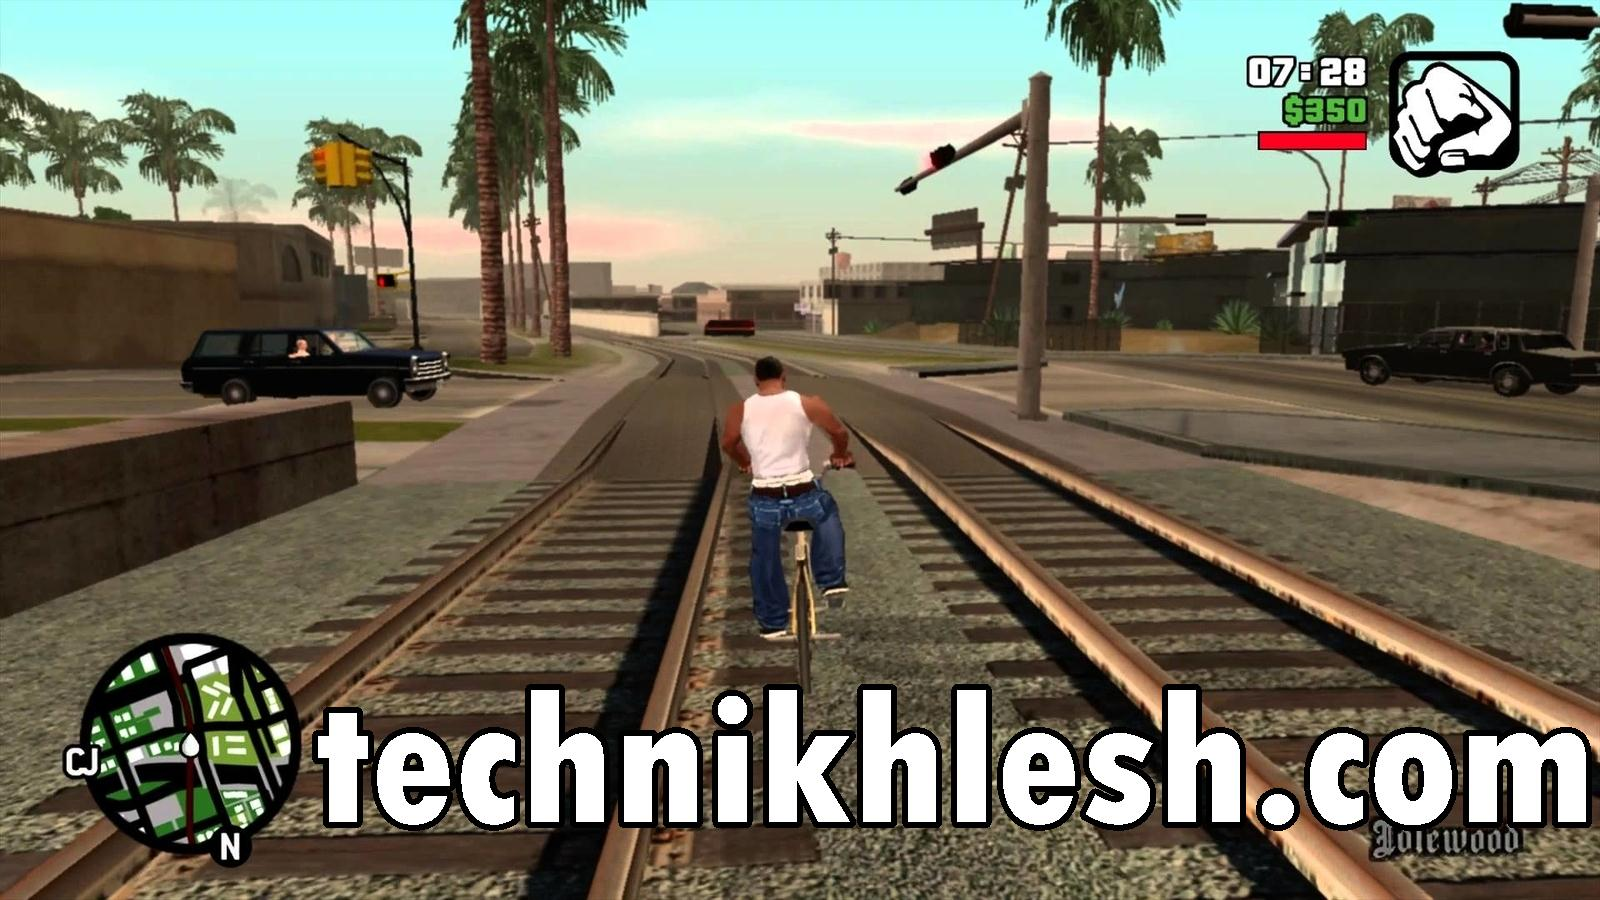 download gta san andreas compressed zip for pc